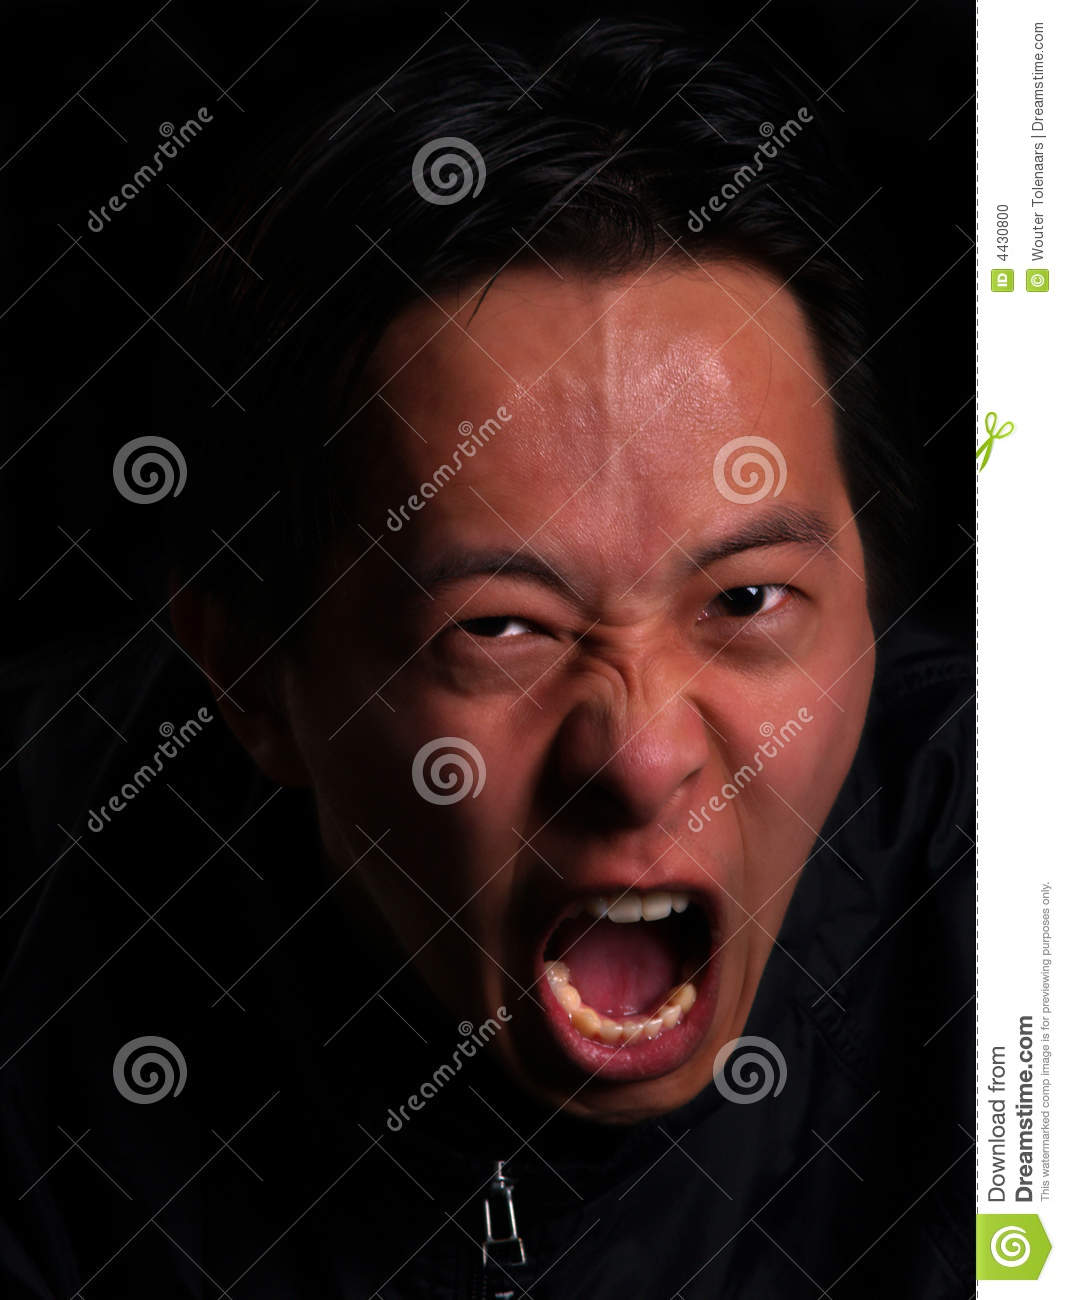 Angry Man Screaming Stock Photo - Image: 4430800